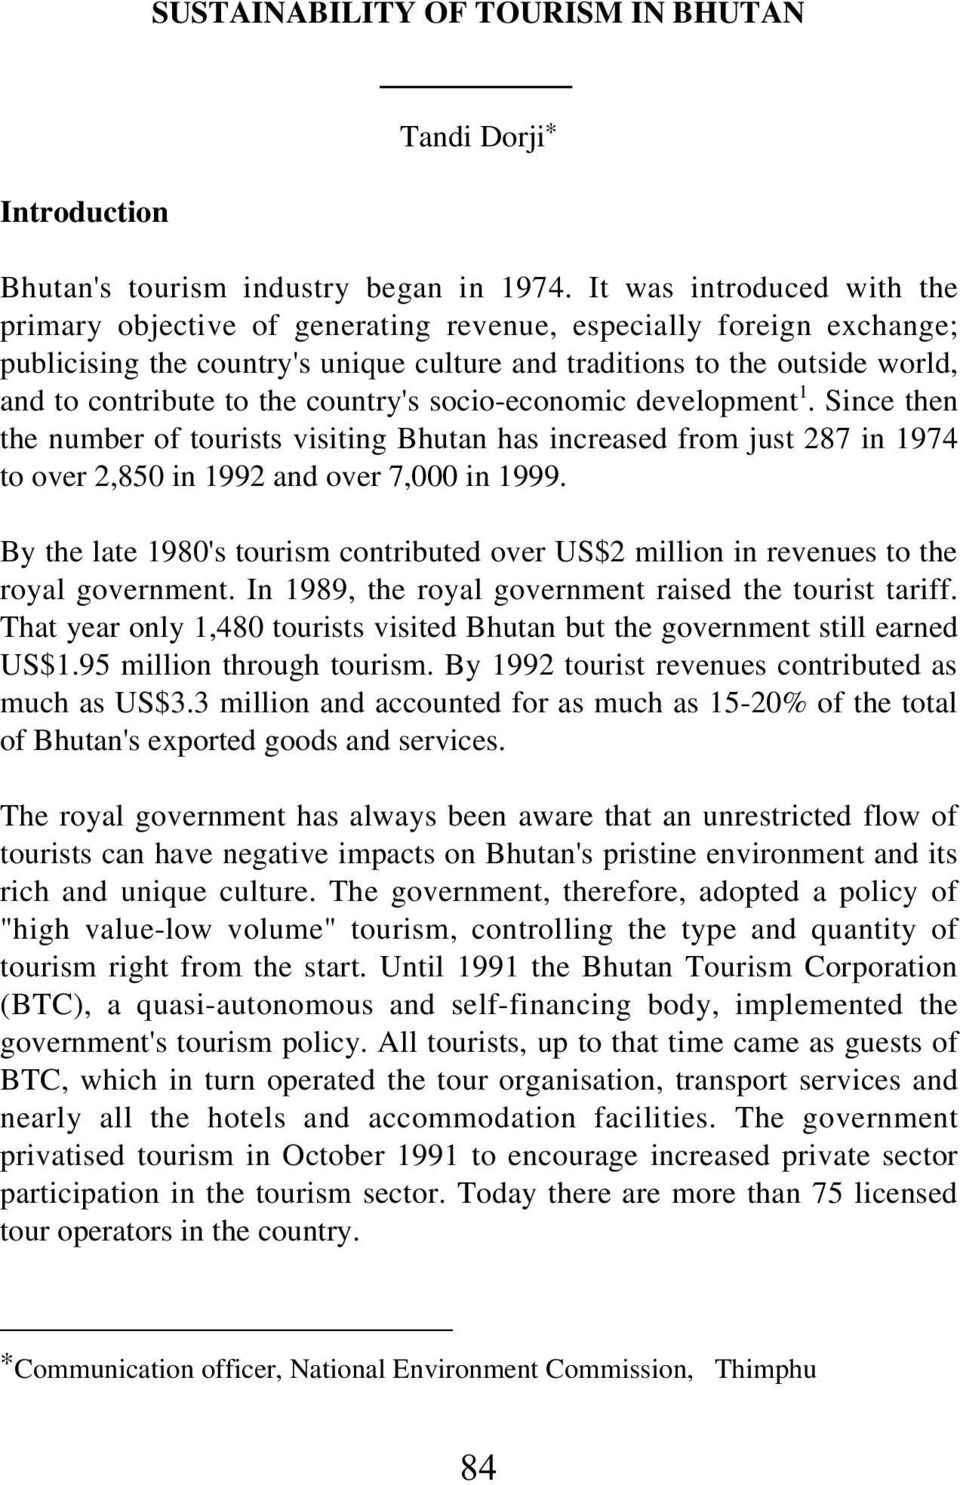 country's socio-economic development 1. Since then the number of tourists visiting Bhutan has increased from just 287 in 1974 to over 2,850 in 1992 and over 7,000 in 1999.